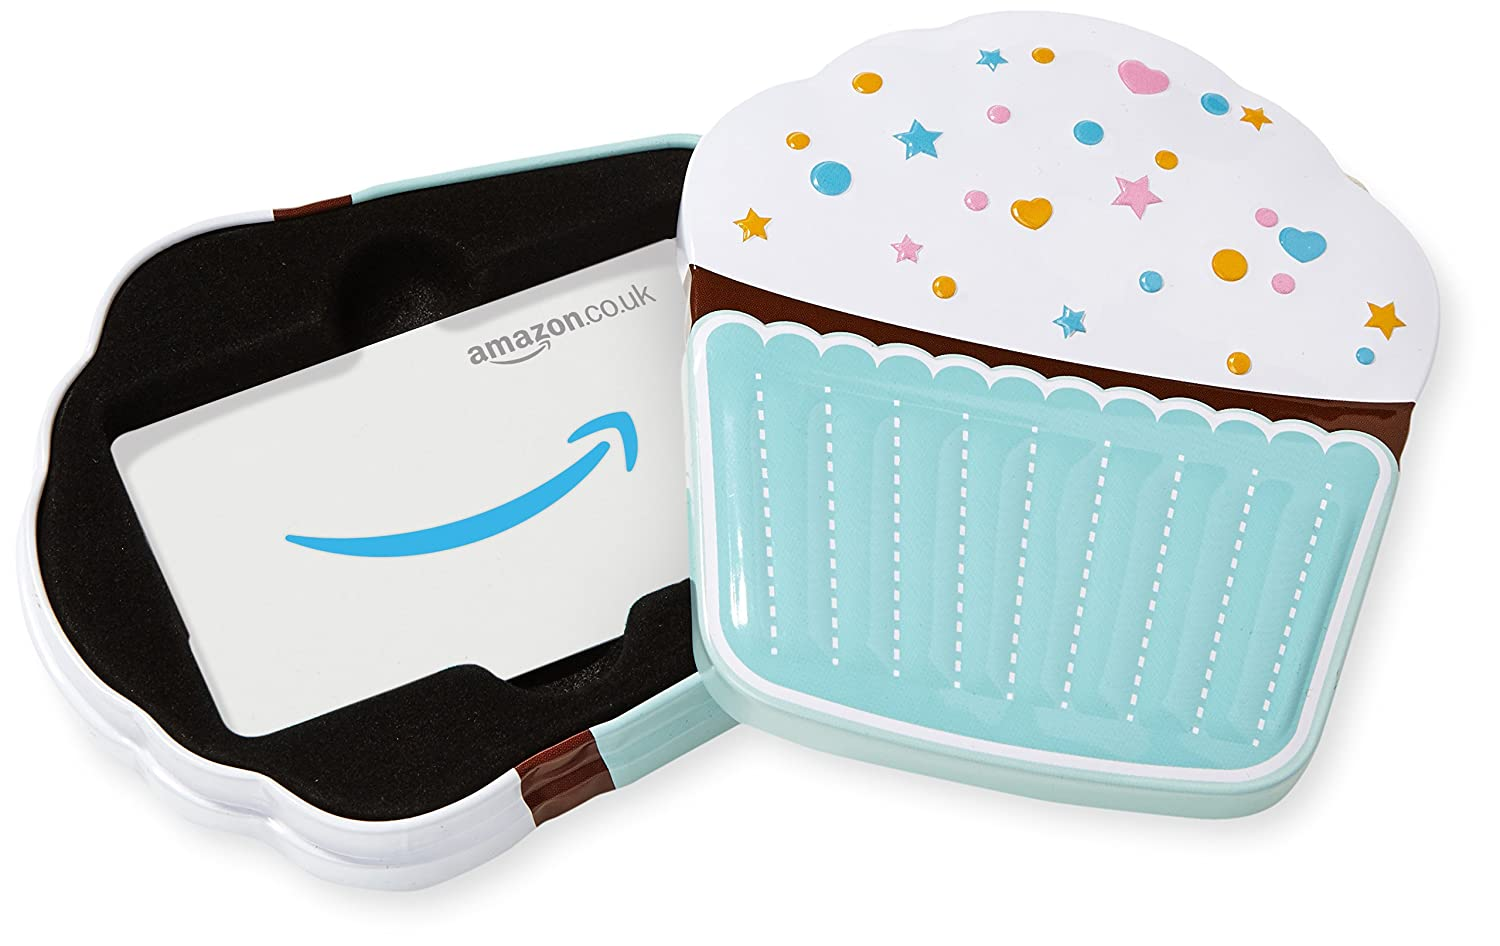 Amazon.co.uk Gift Card for Custom Amount in a Cupcake Tin - FREE One-Day Delivery Amazon EU S.à.r.l. VariableDenomination